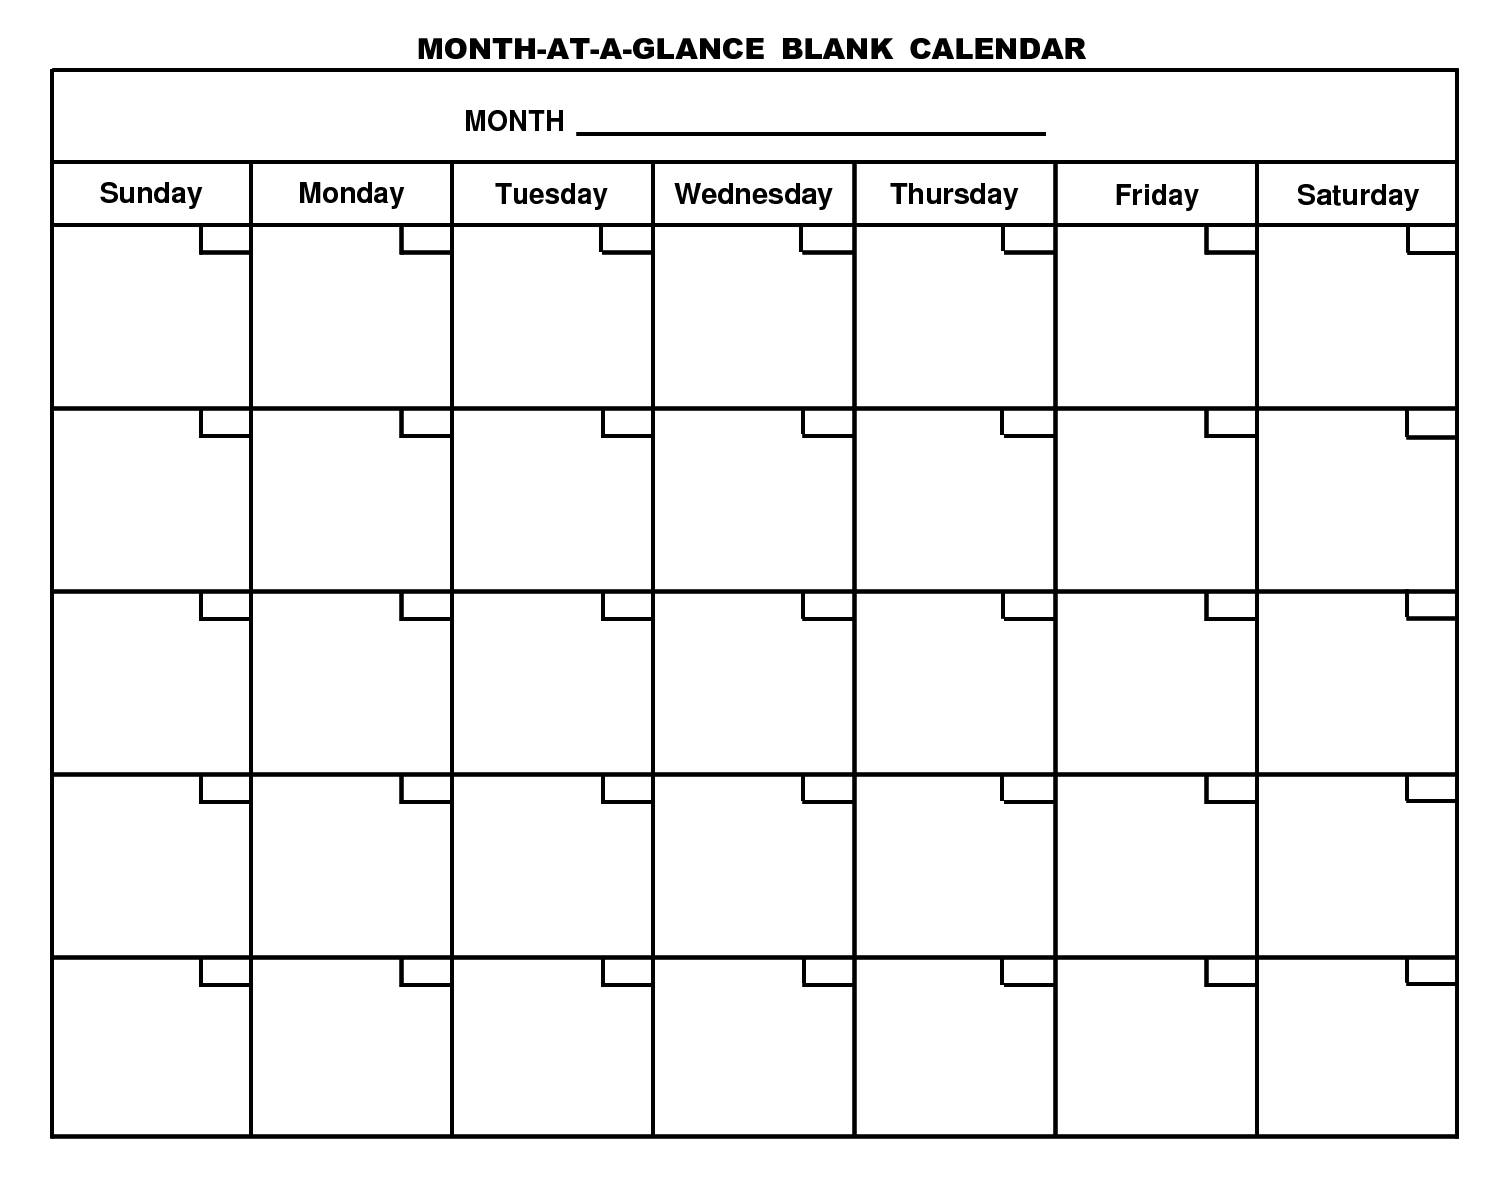 Monthly Calendar Print Out